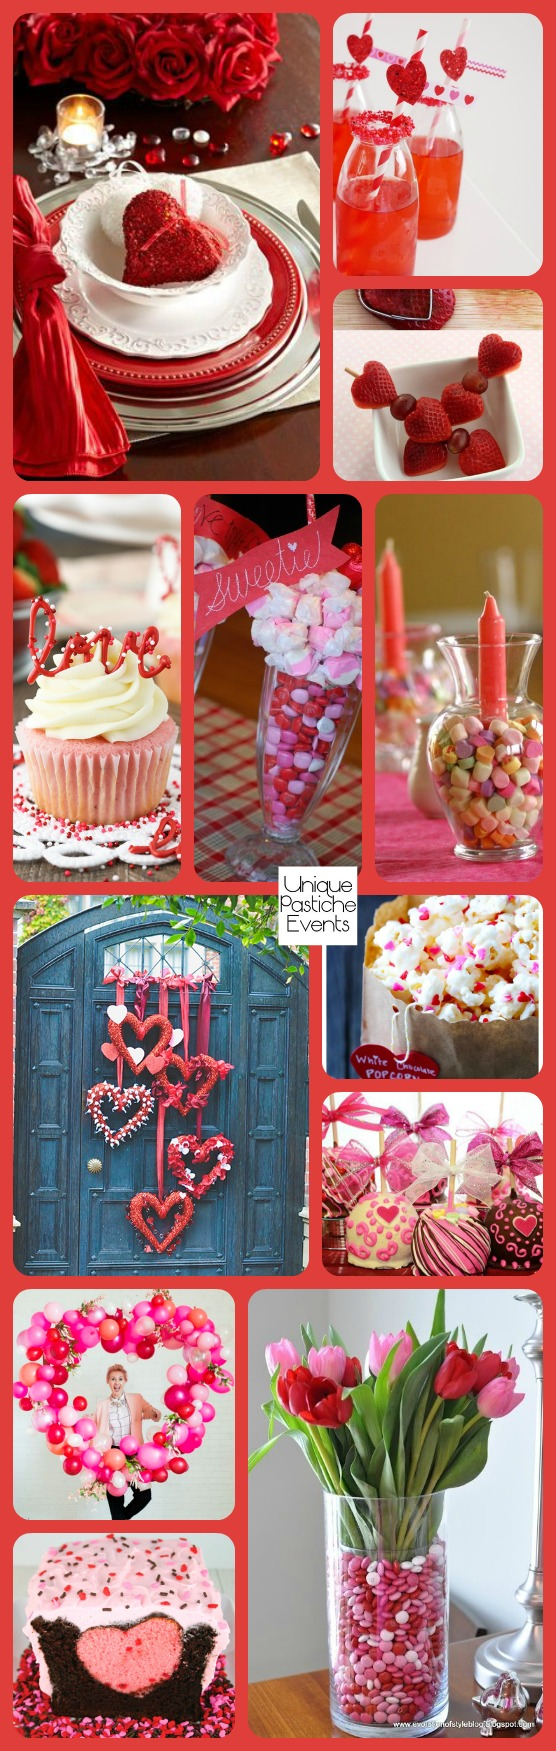 Sweets for Your Sweetie - Valentine's Day Dessert Soiree Ideas See the full post with all the details: https://uniquepasticheevents.com/2016/02/11/sweets-for-your-sweetie-valentines-day-dessert-soiree-ideas/